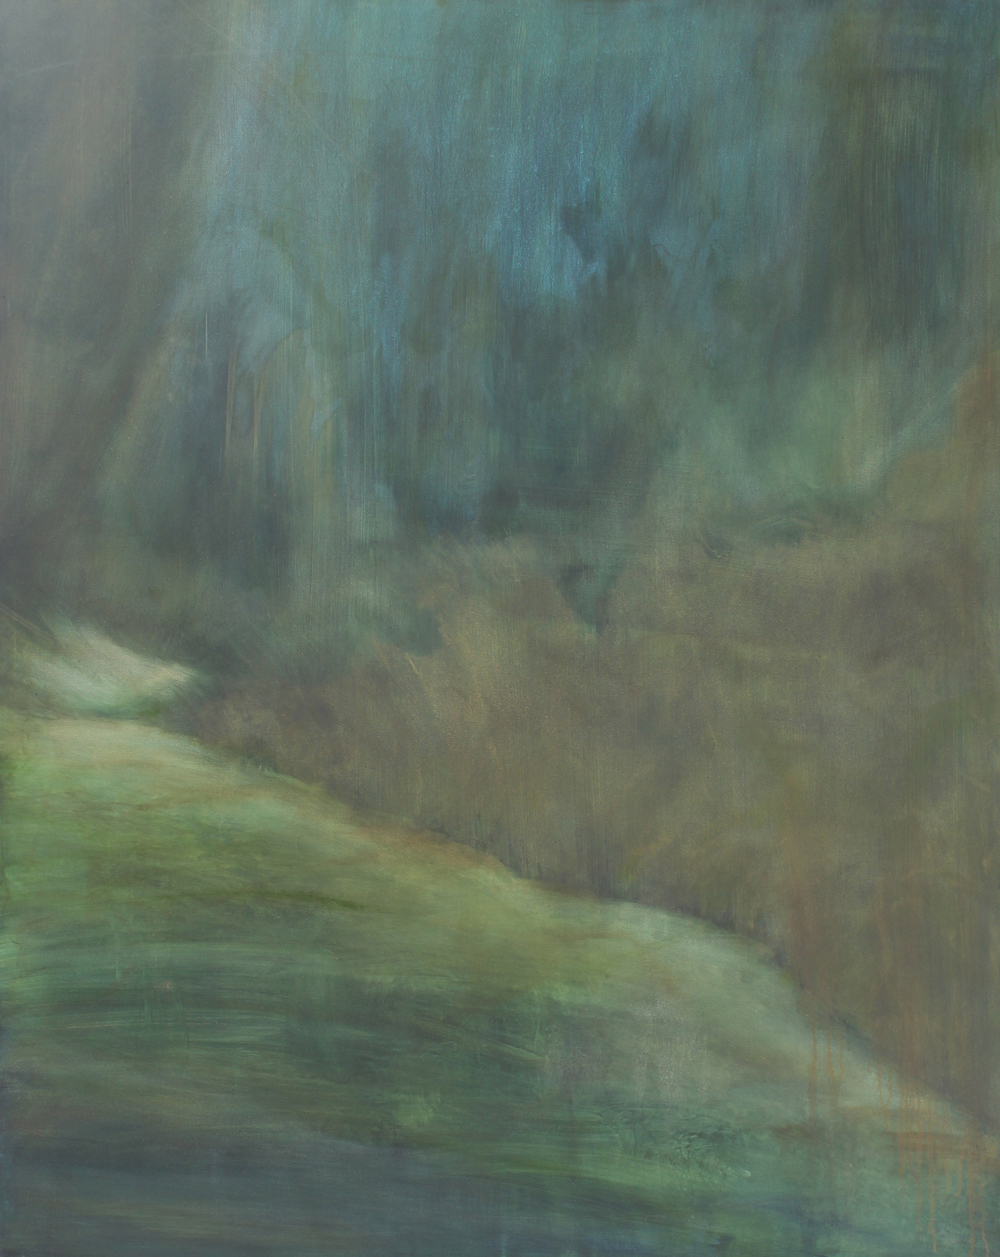 Hightail, 2015, oil on canvas, 150 x 120cm